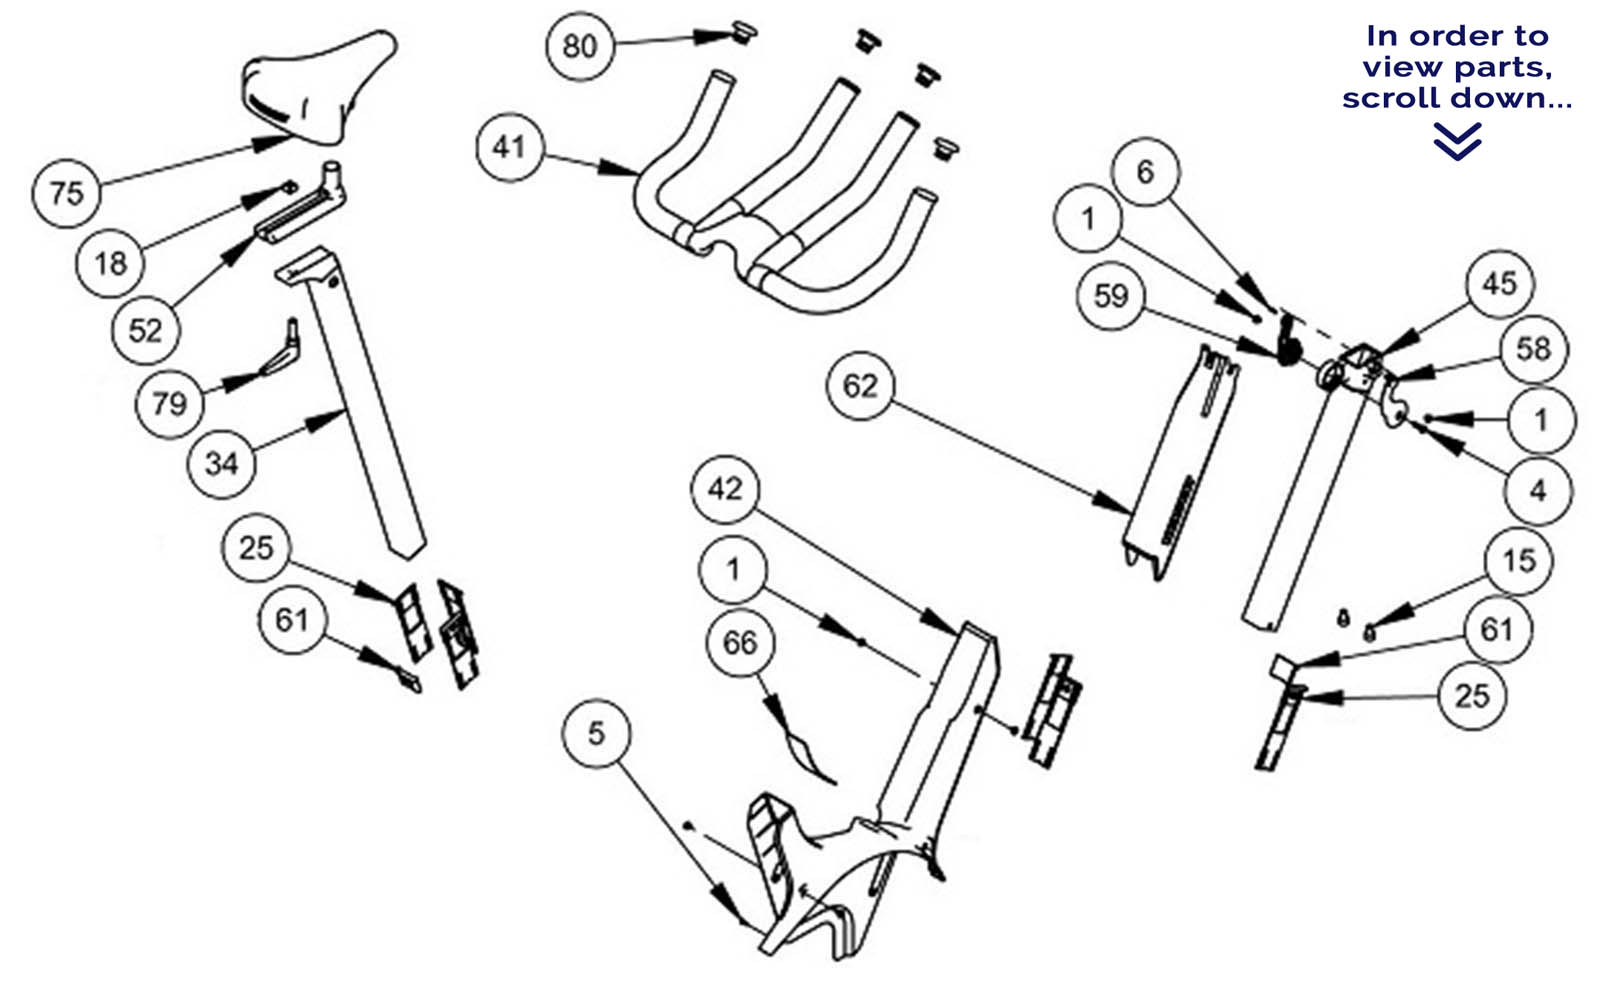 Keiser M3 Handlebar Seat Parts Scroll Down To View Parts